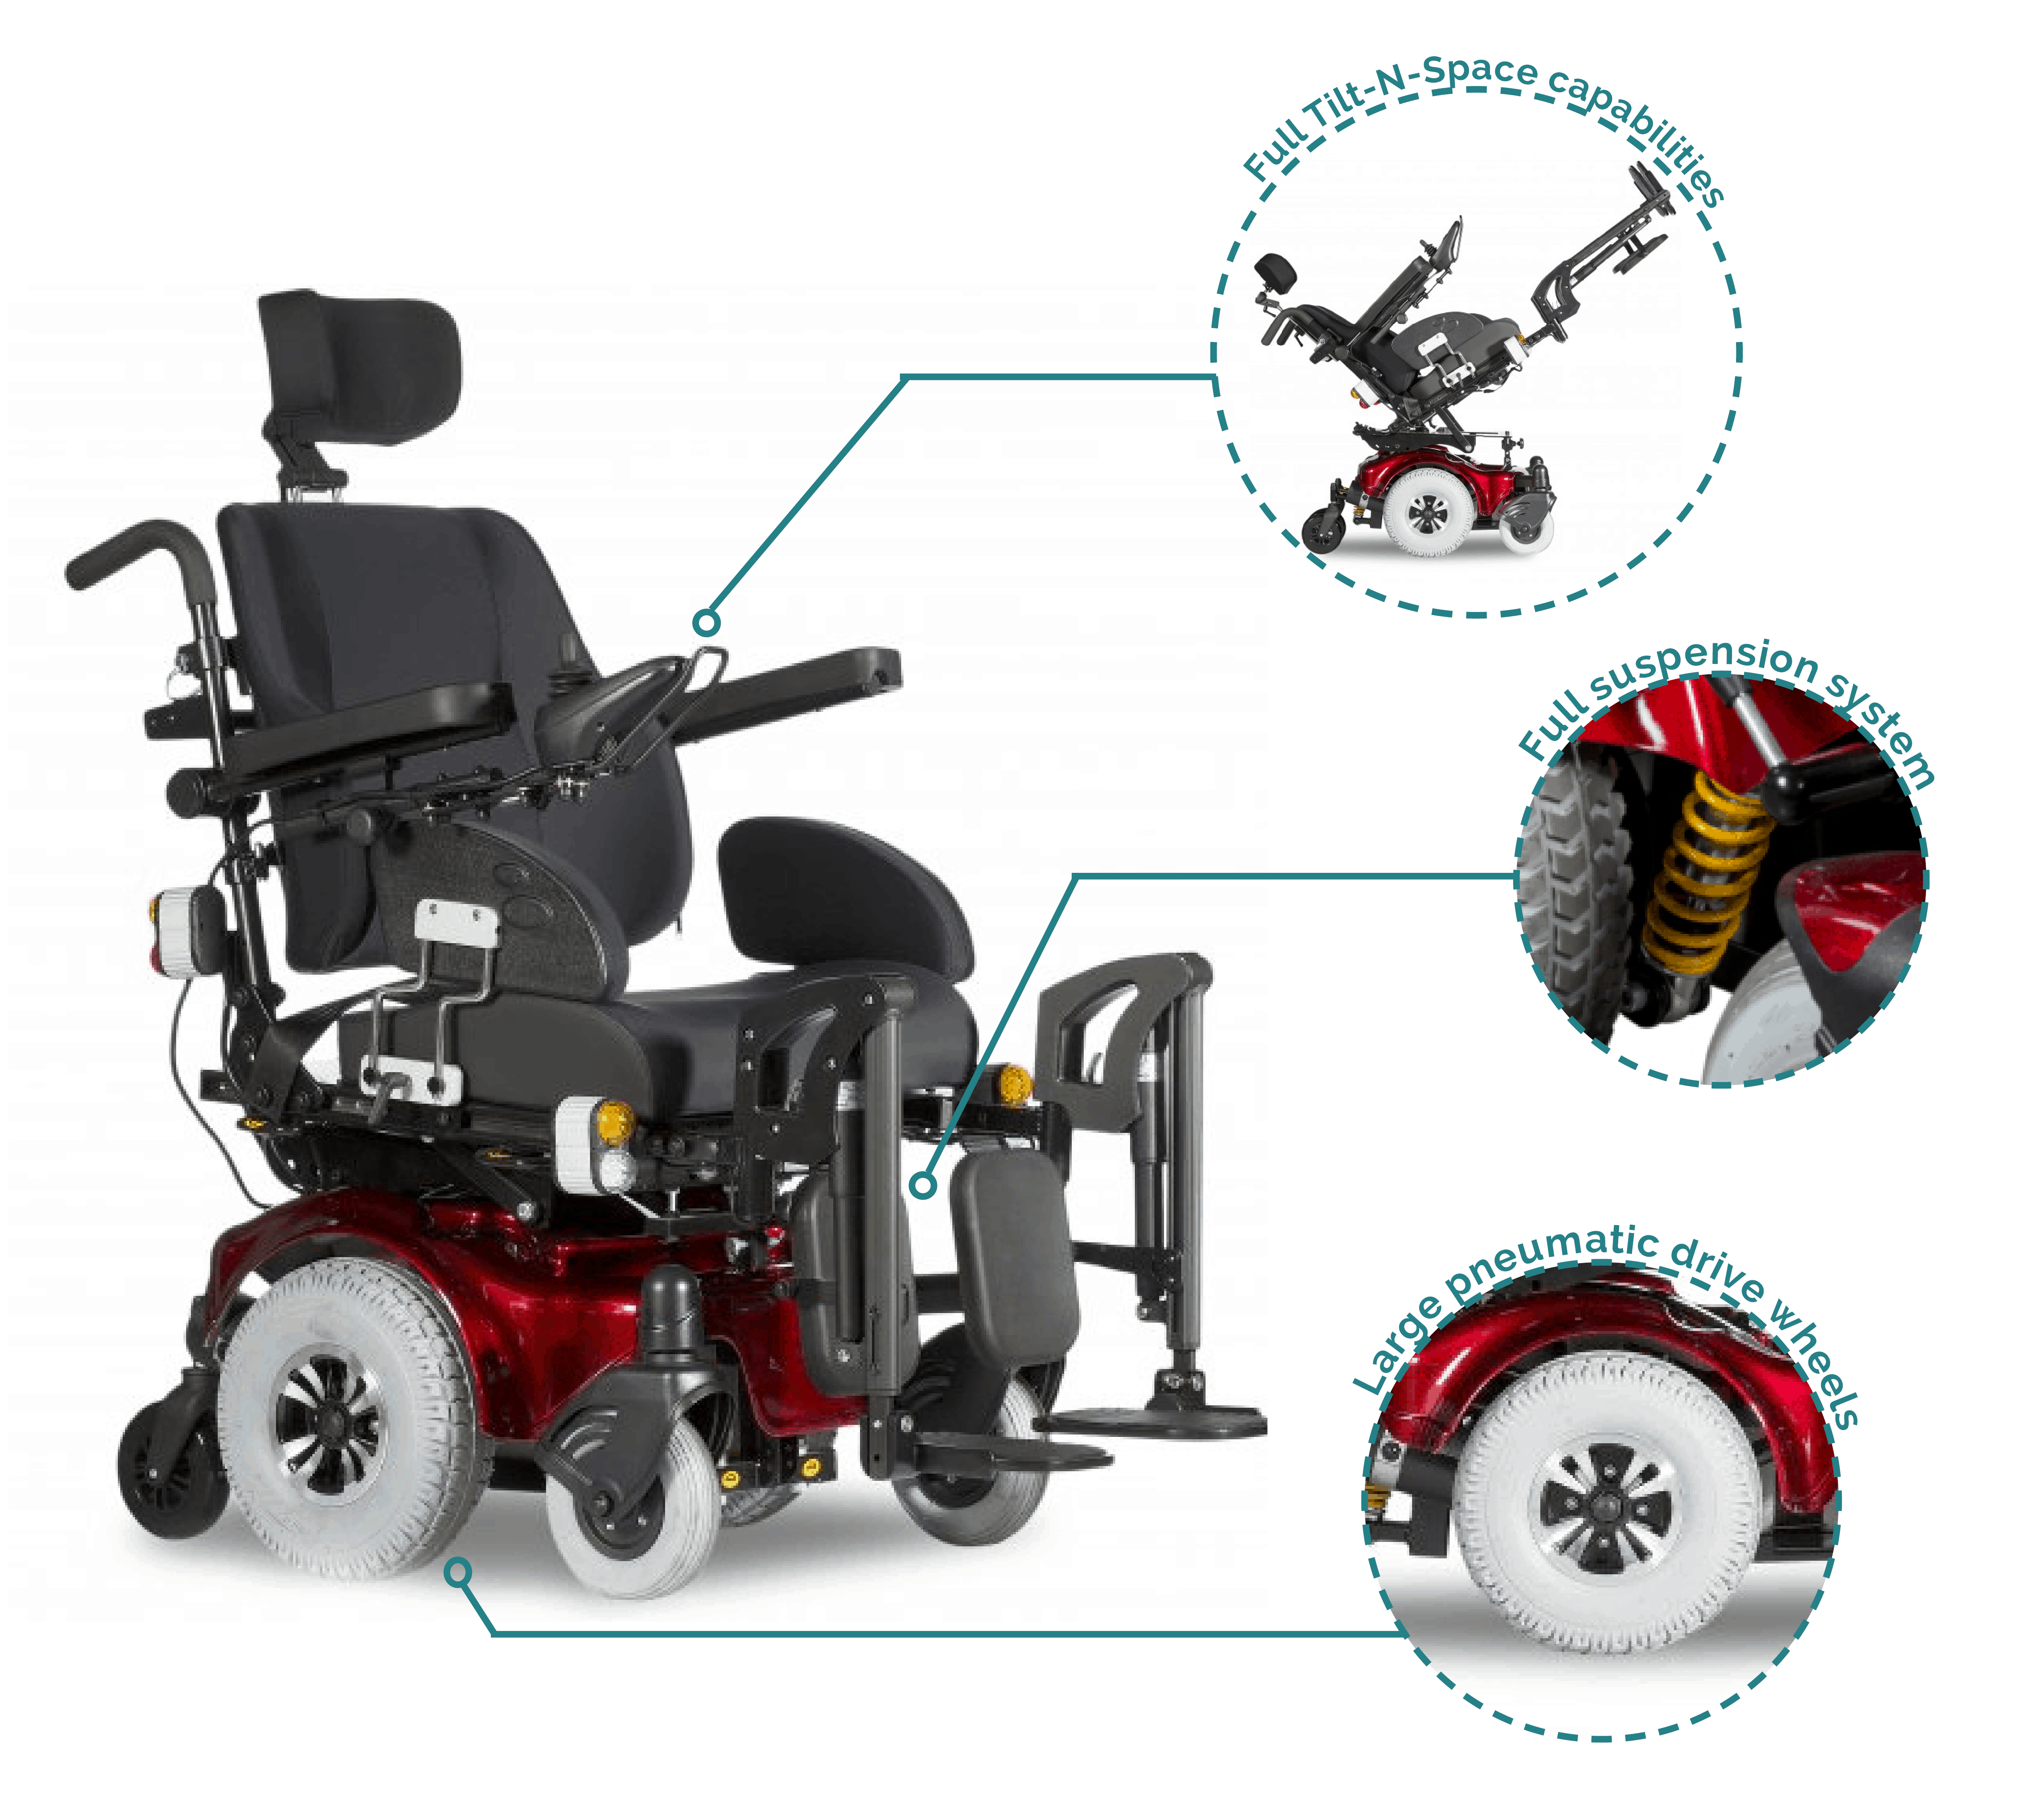 Heartway Allure (HP6RT) Tilt-N-Space Electric Wheelchair